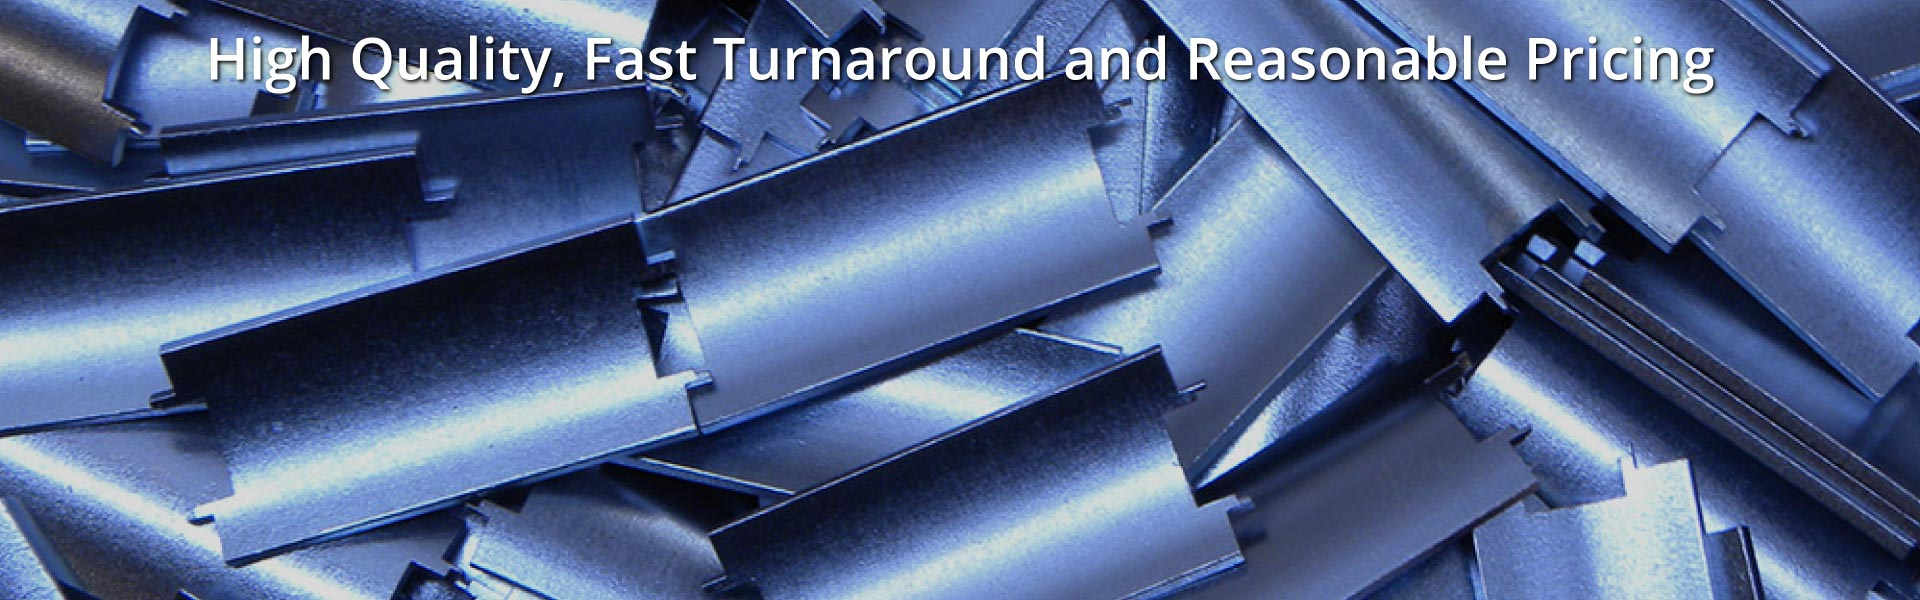 High Quality, Fast Turnaround and Reasonable Pricing | Zinc plated metal